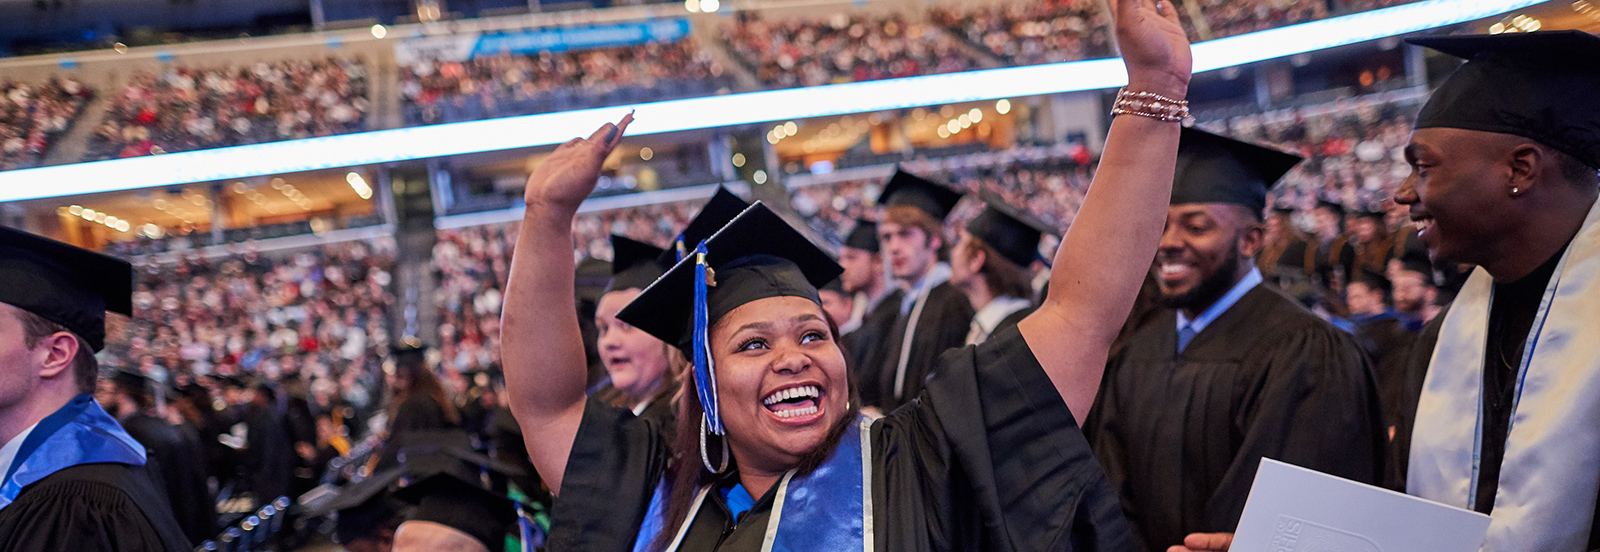 student at commencement celebrates